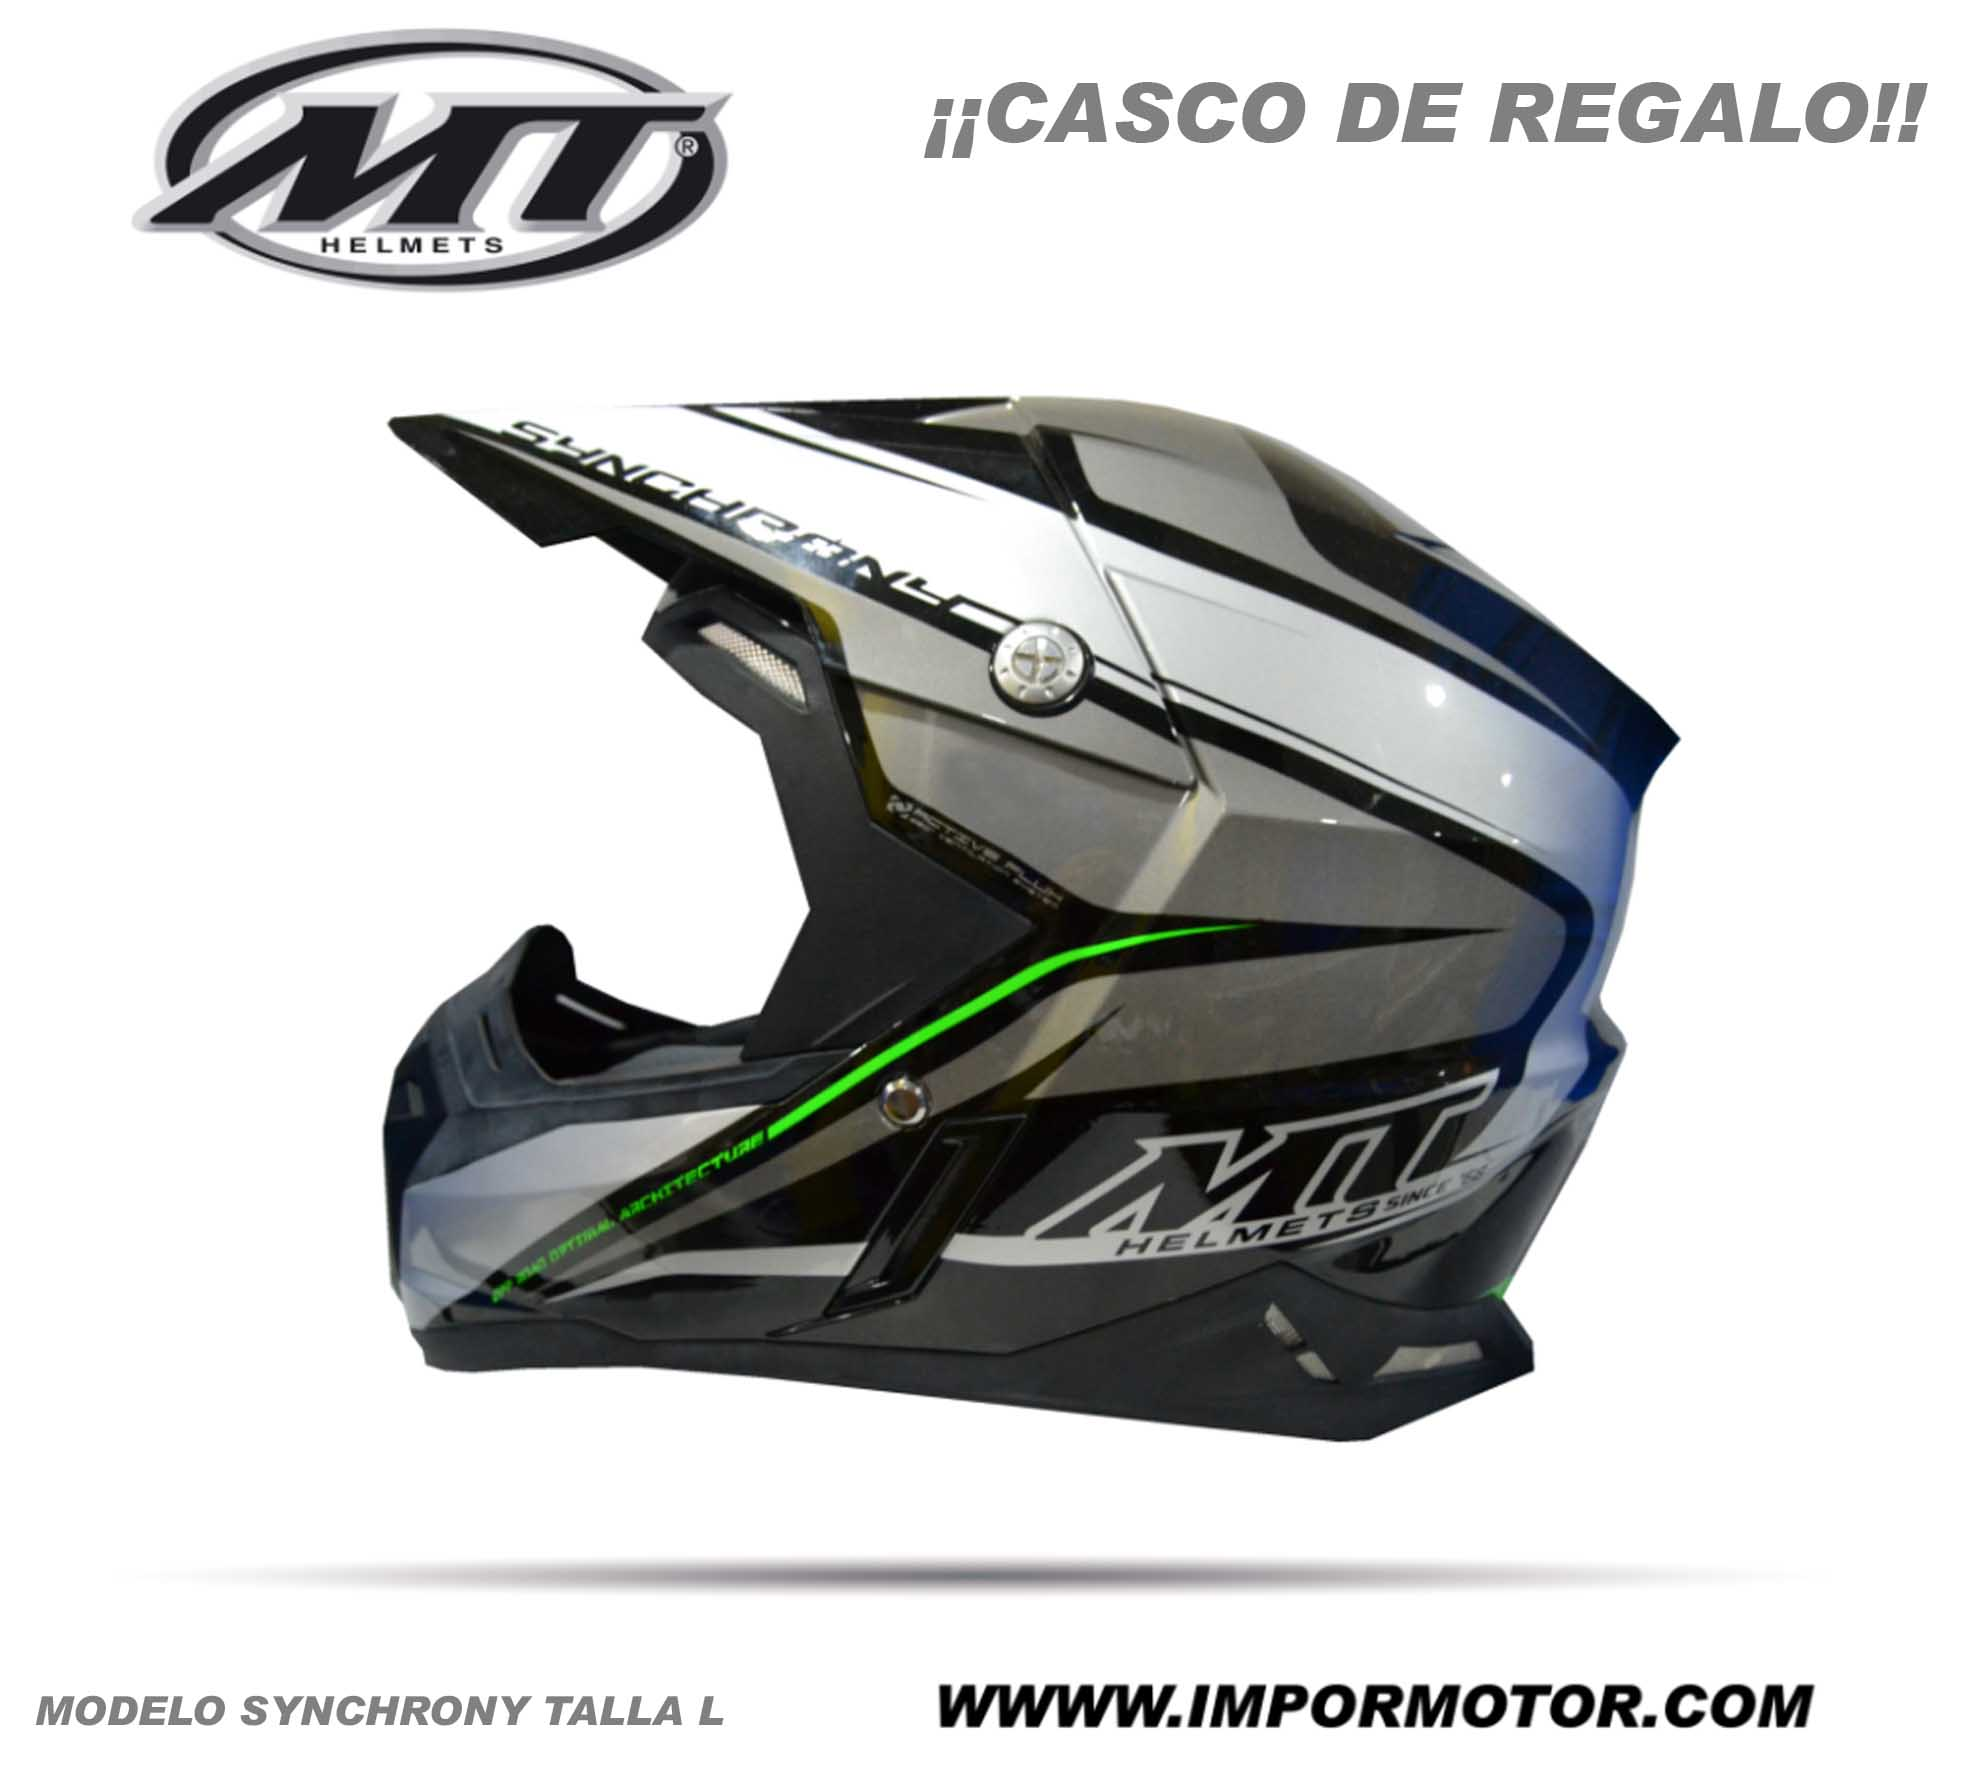 casco20regalo-1.jpg